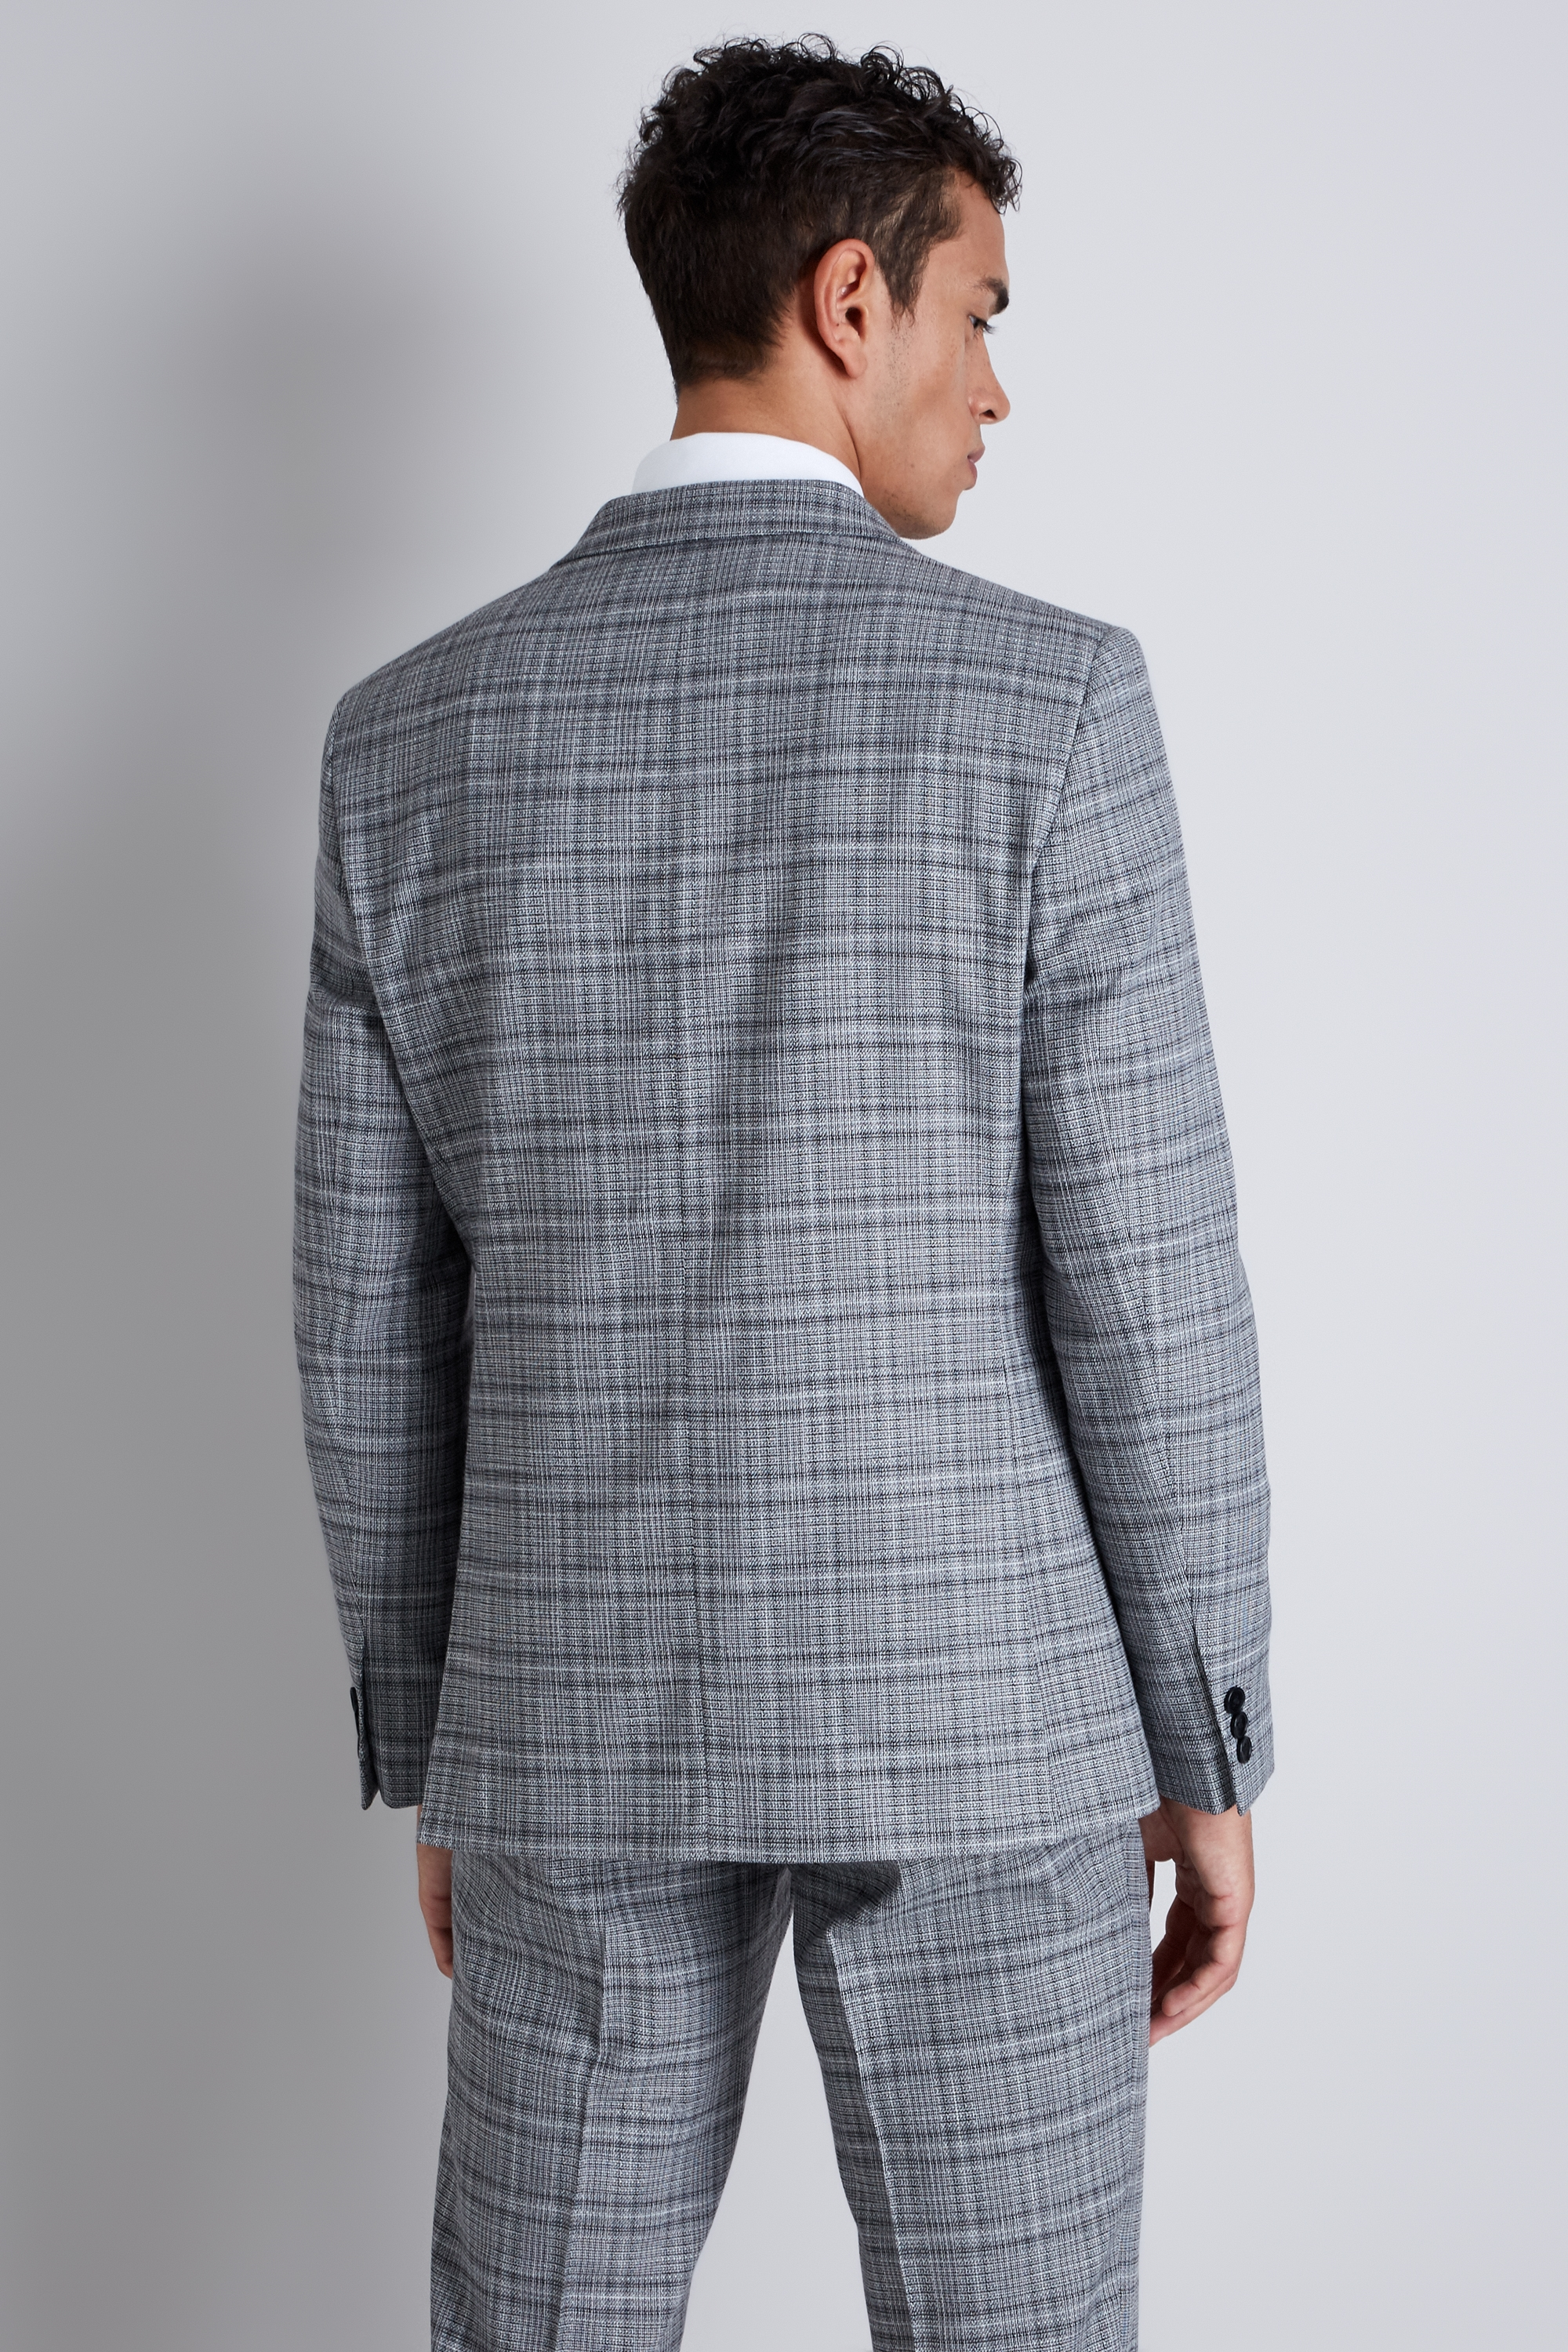 Details about Moss London Mens Suit Jacket Skinny Fit Black and White Twist  Check 2 Button